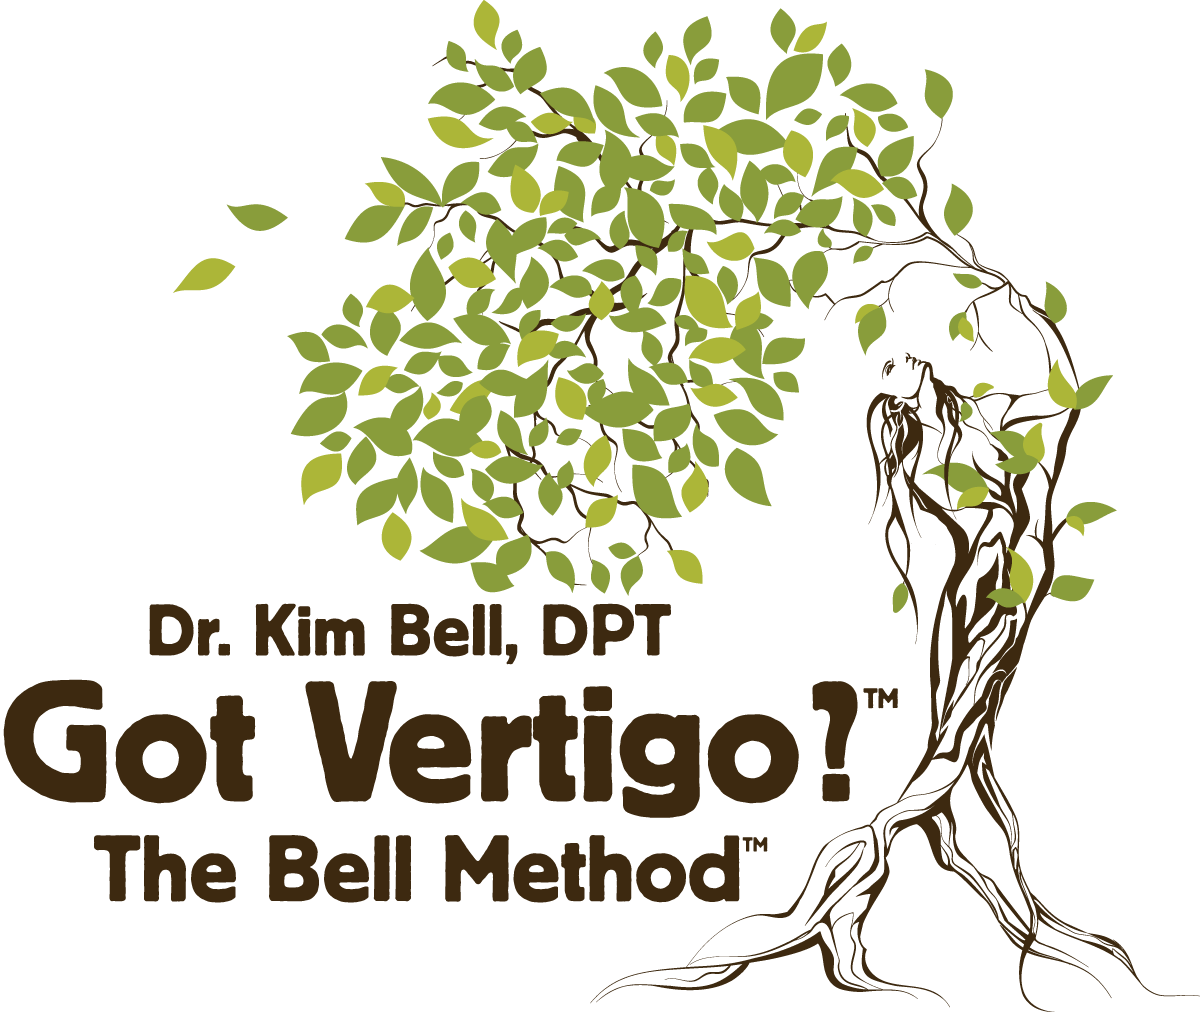 The Bell Method - Dr. Kim Bell, DPT - San Diego Vertigo Expert